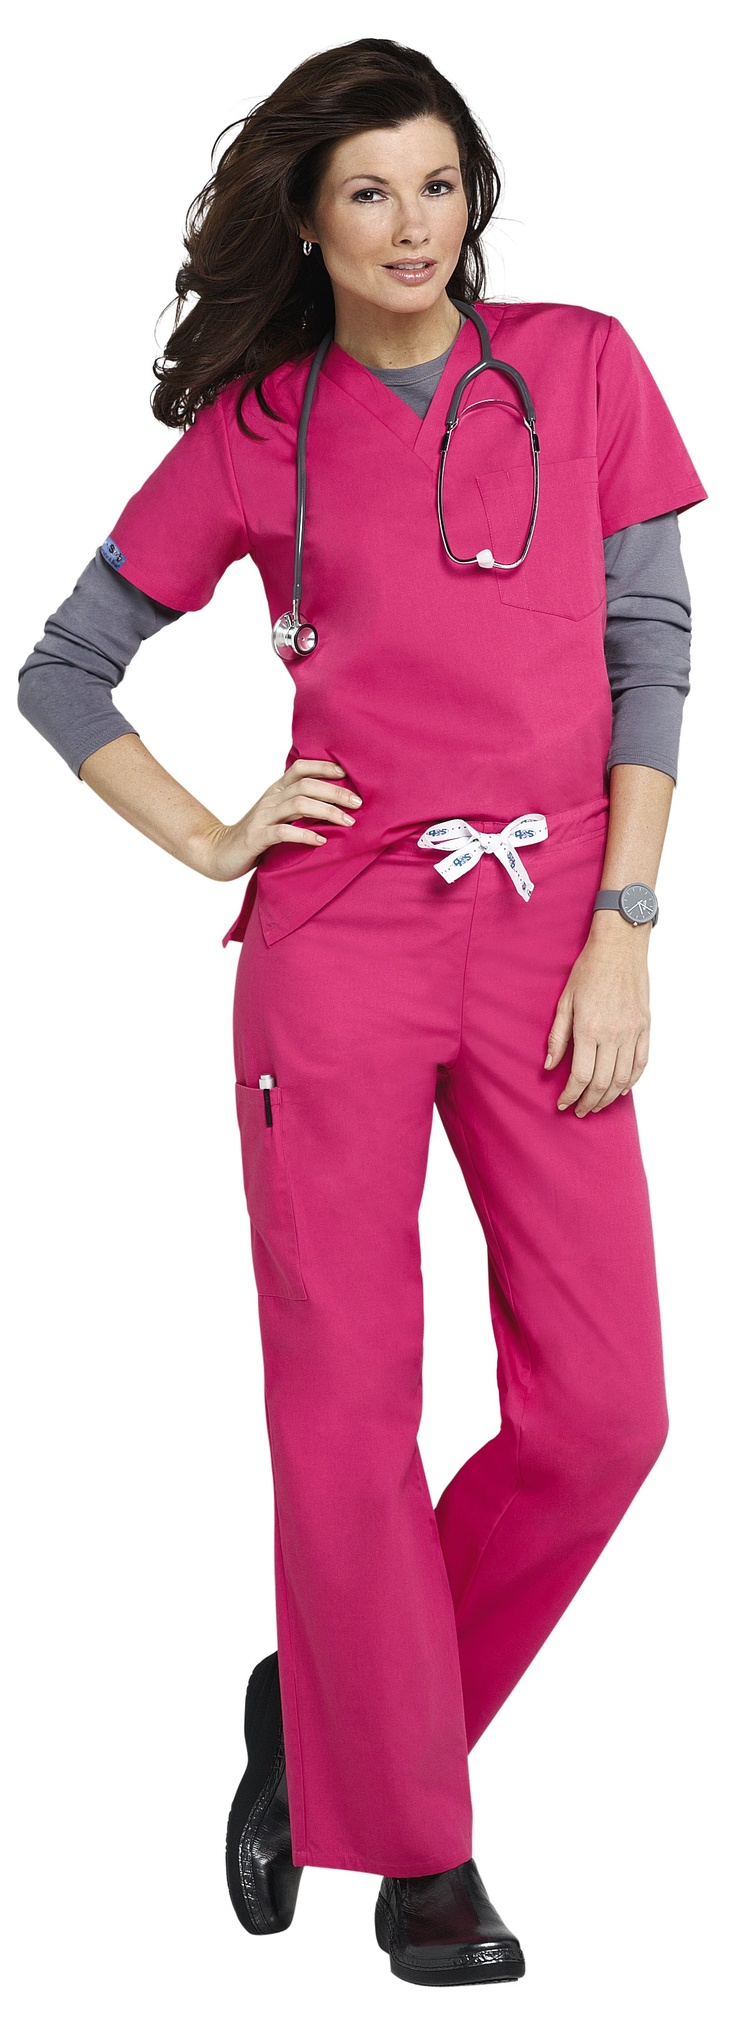 cap online shop malaysia Scrubs  amp  Beyond   this site has great below  10 sales on scrubs  they have long pant legs too